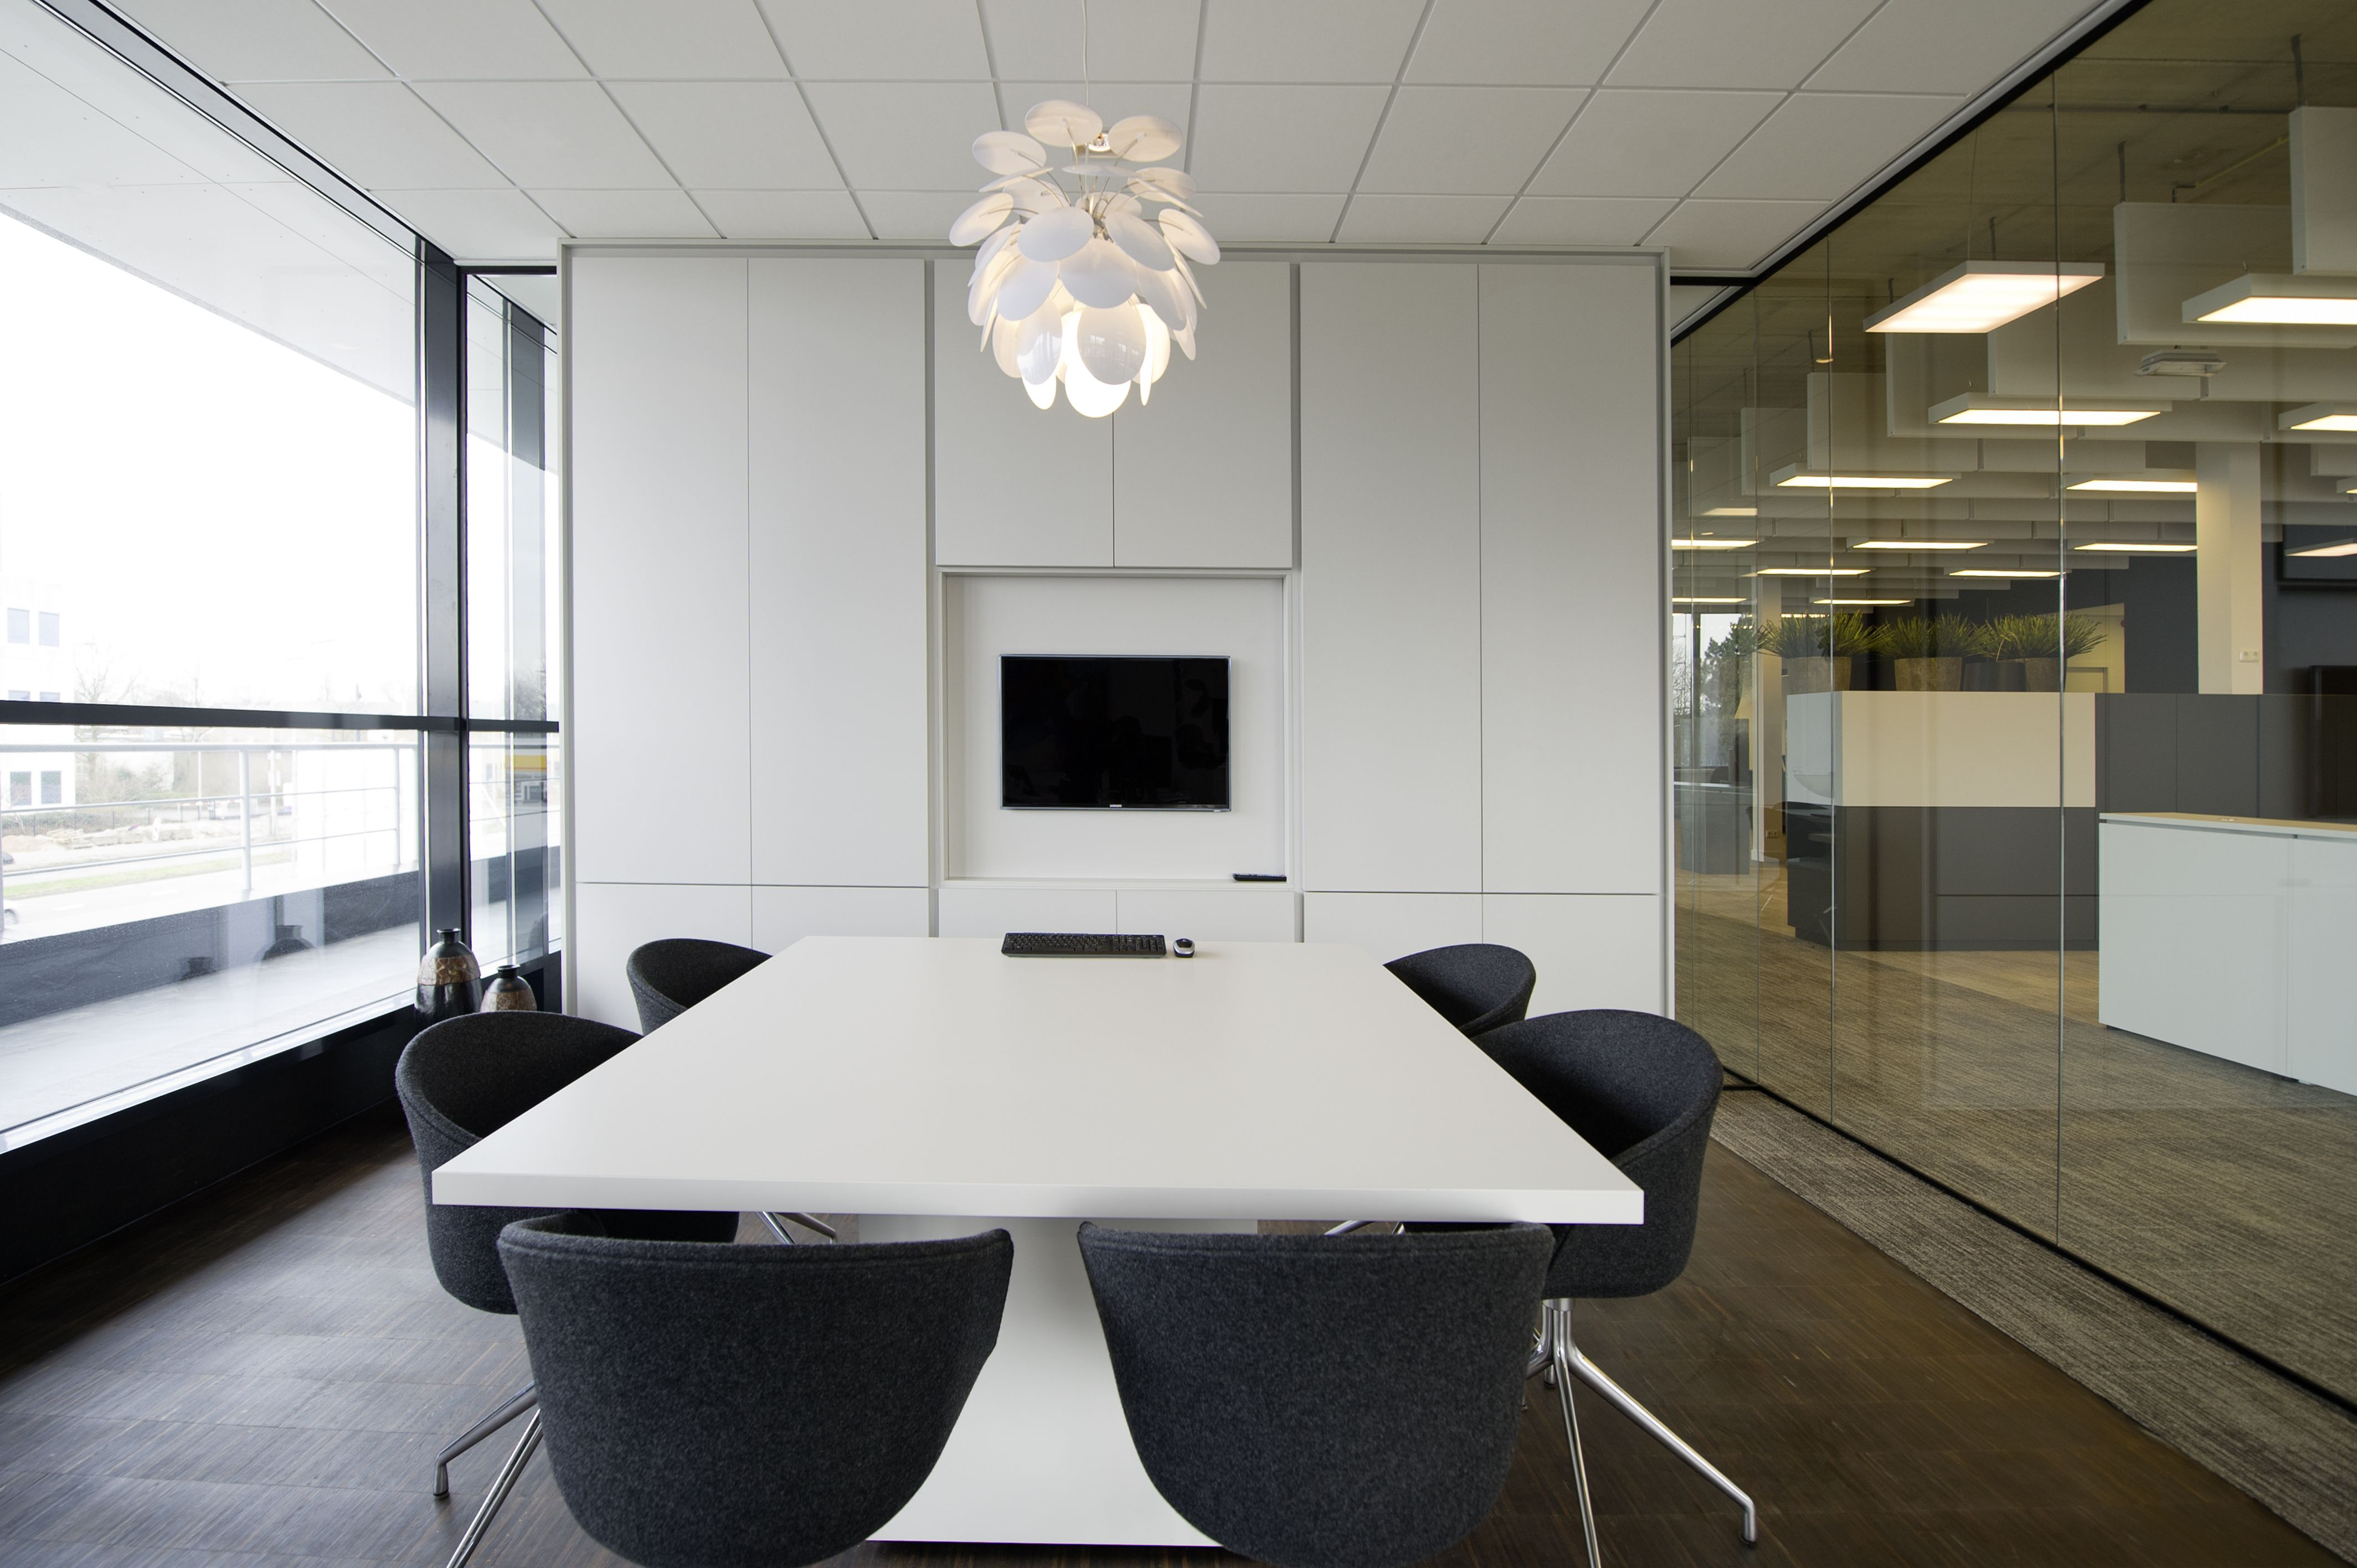 Wing Glasswall System - Westra etc